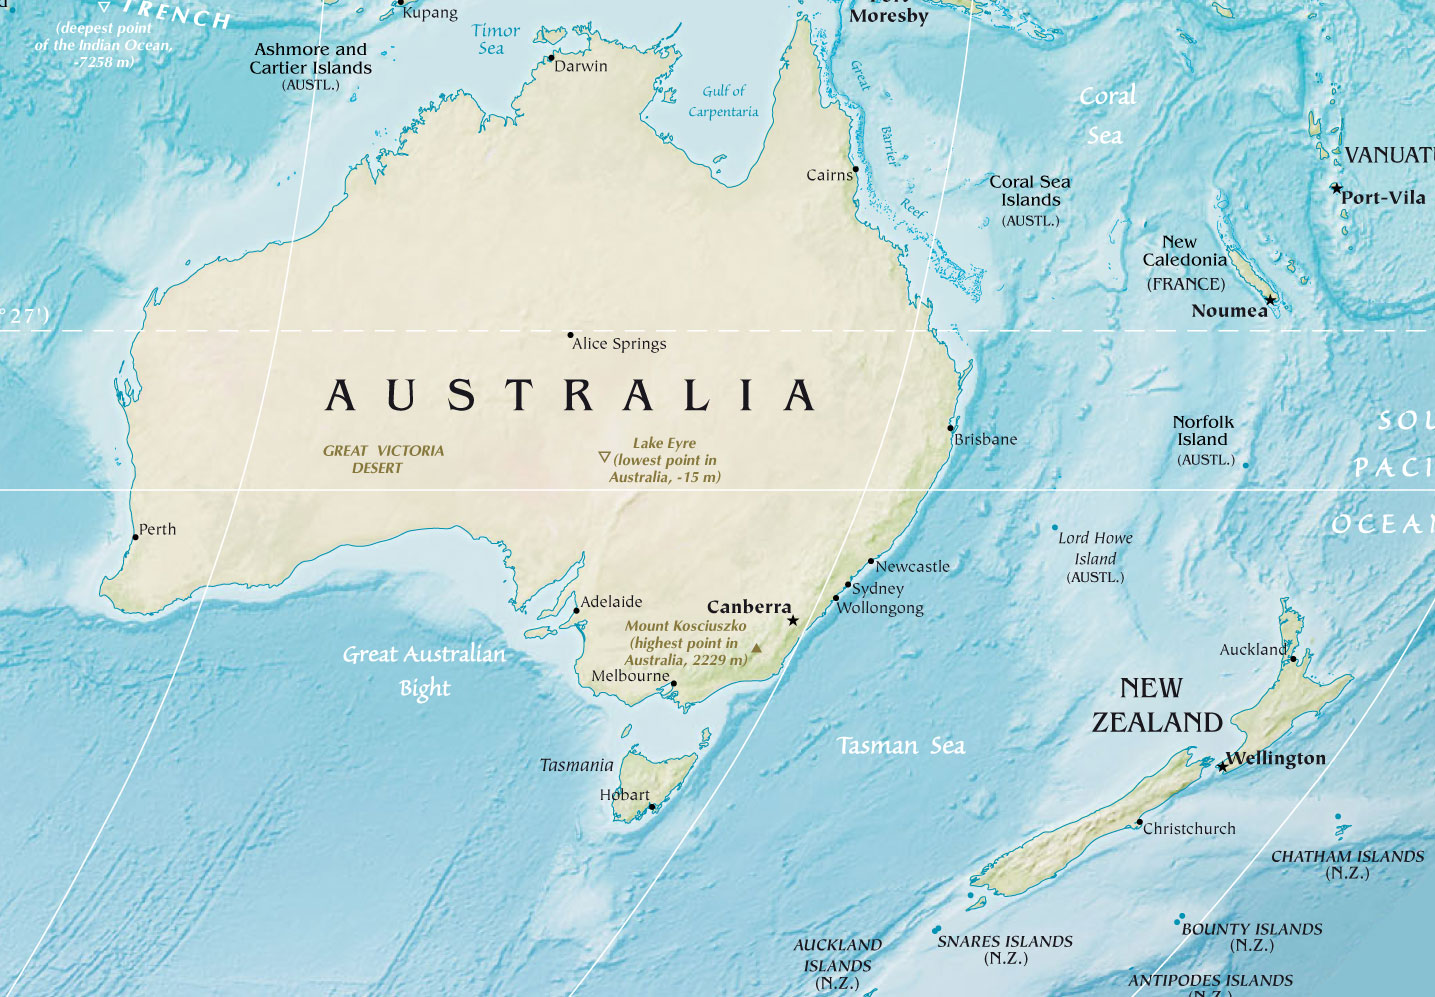 New Zealand Australia Map.Australia And New Zealand Mapsof Net